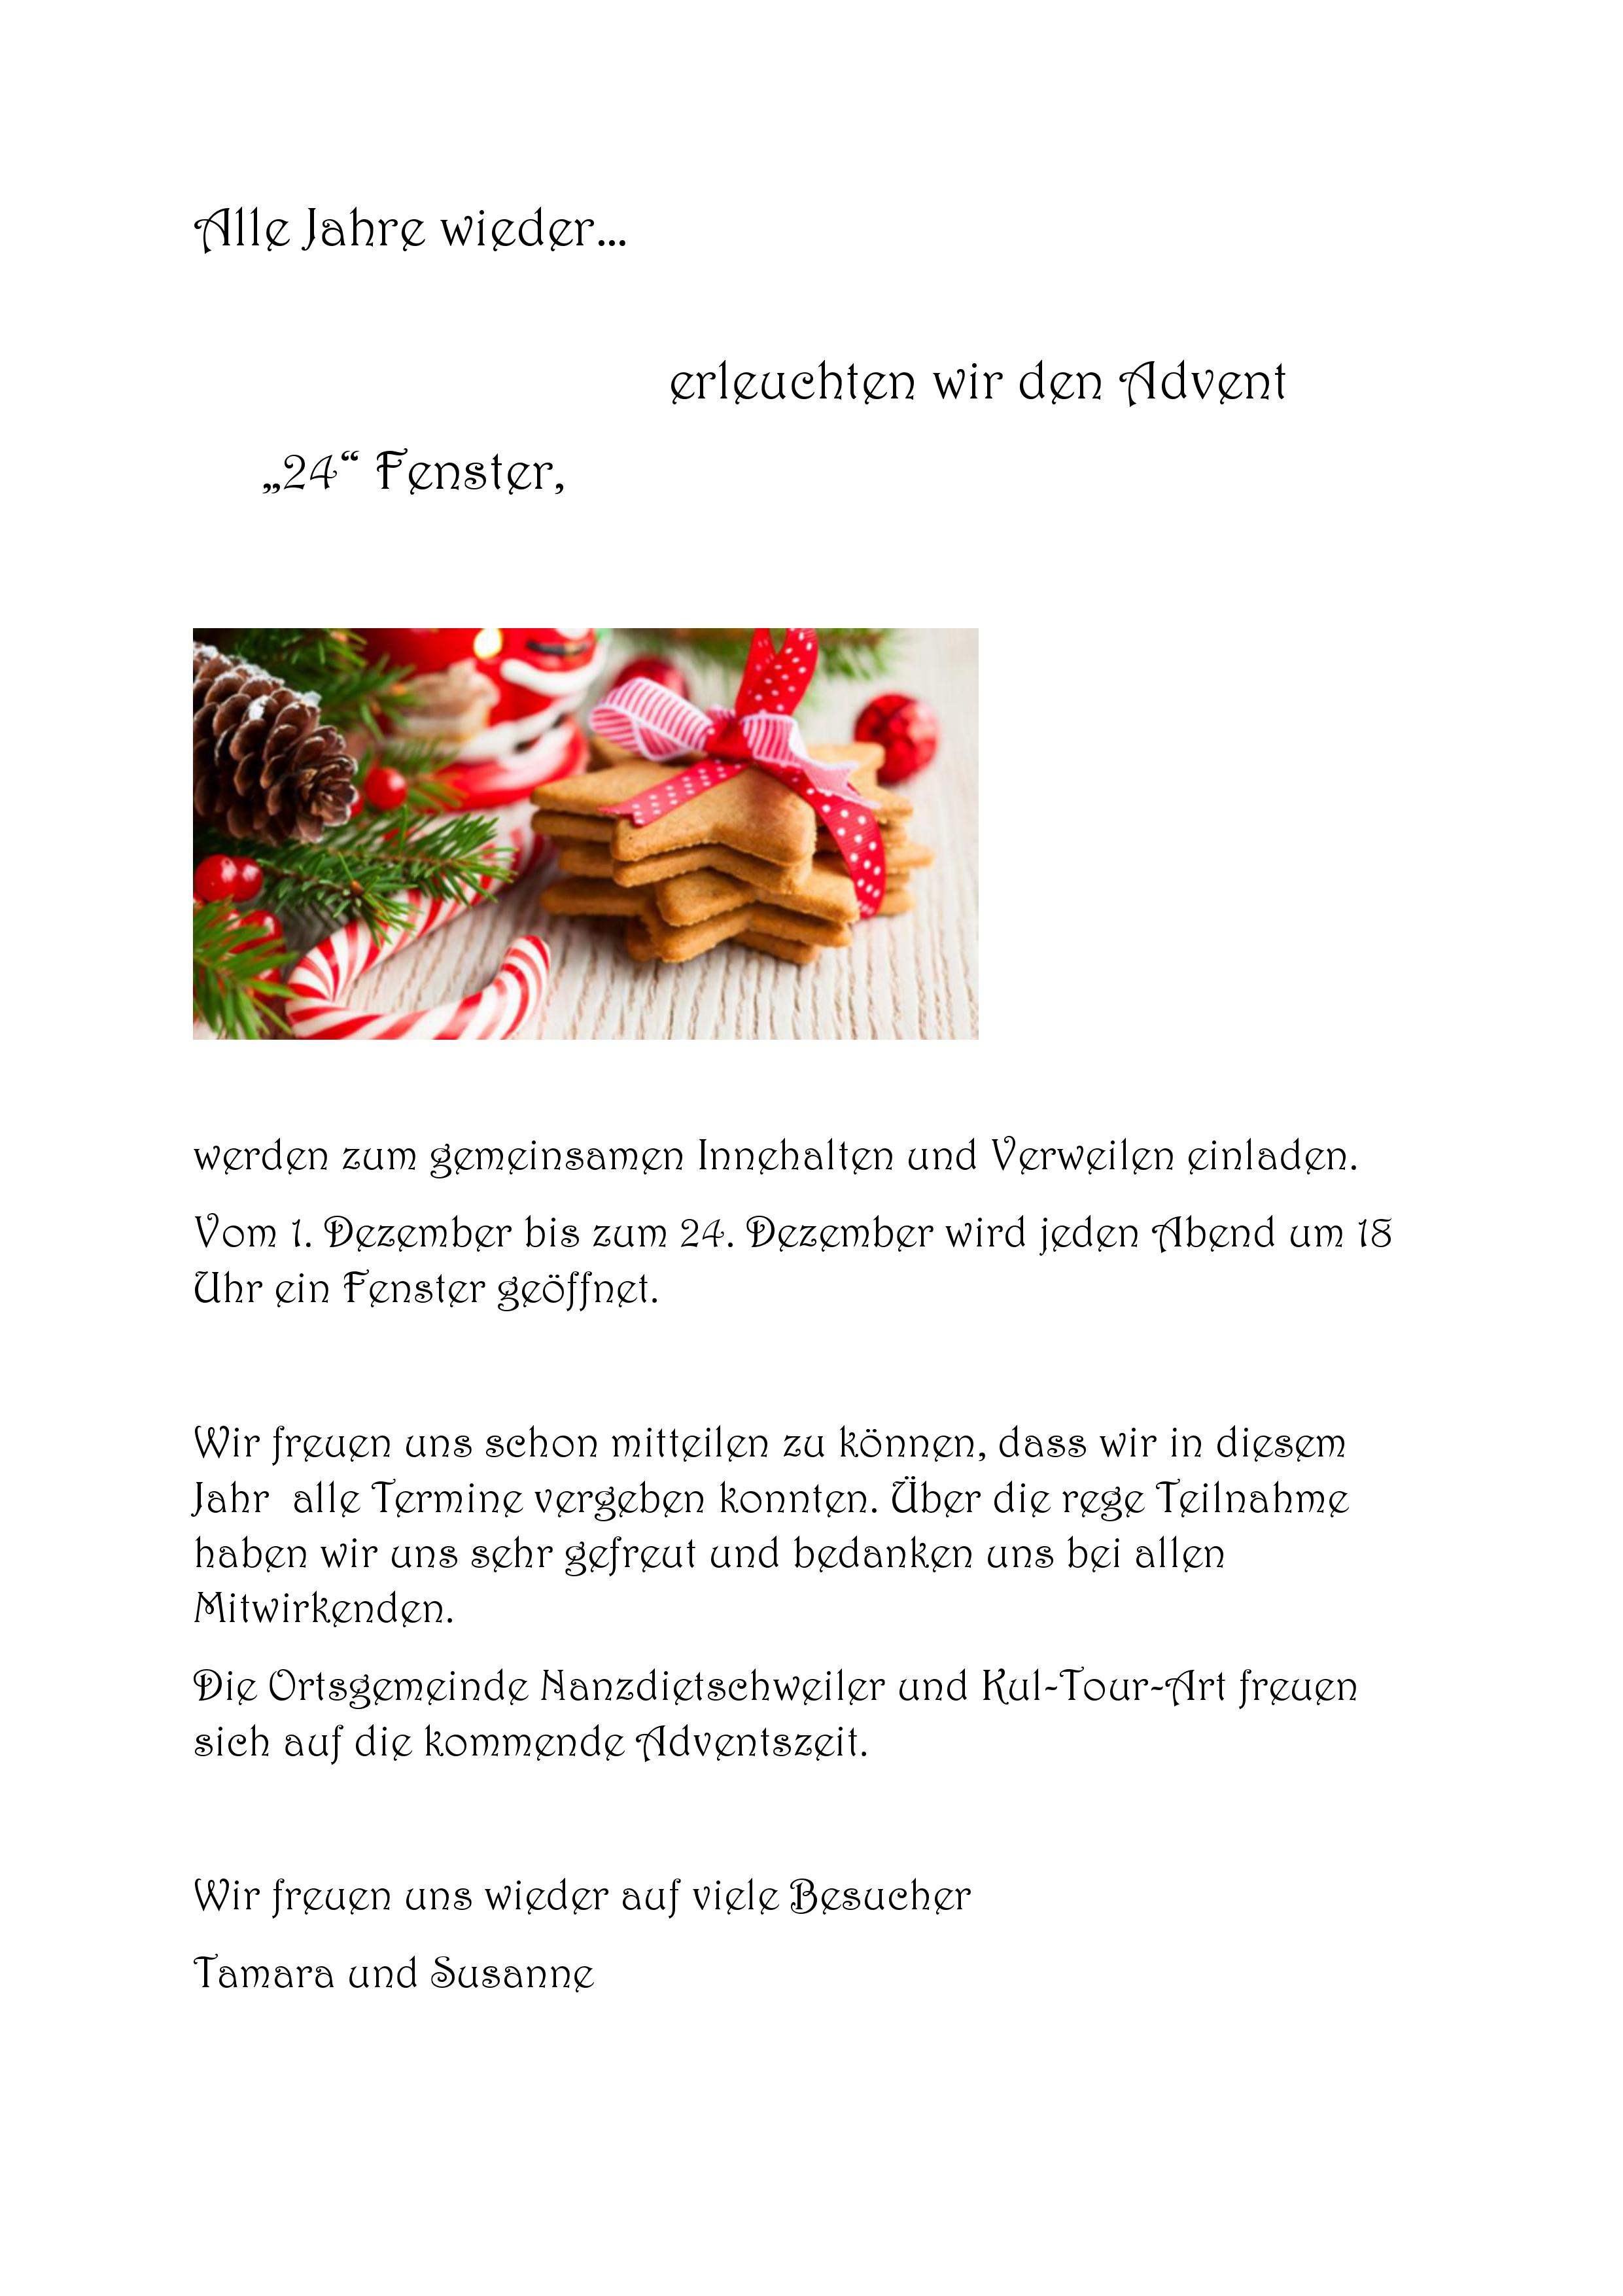 2019 11 13 Adventseinleitung